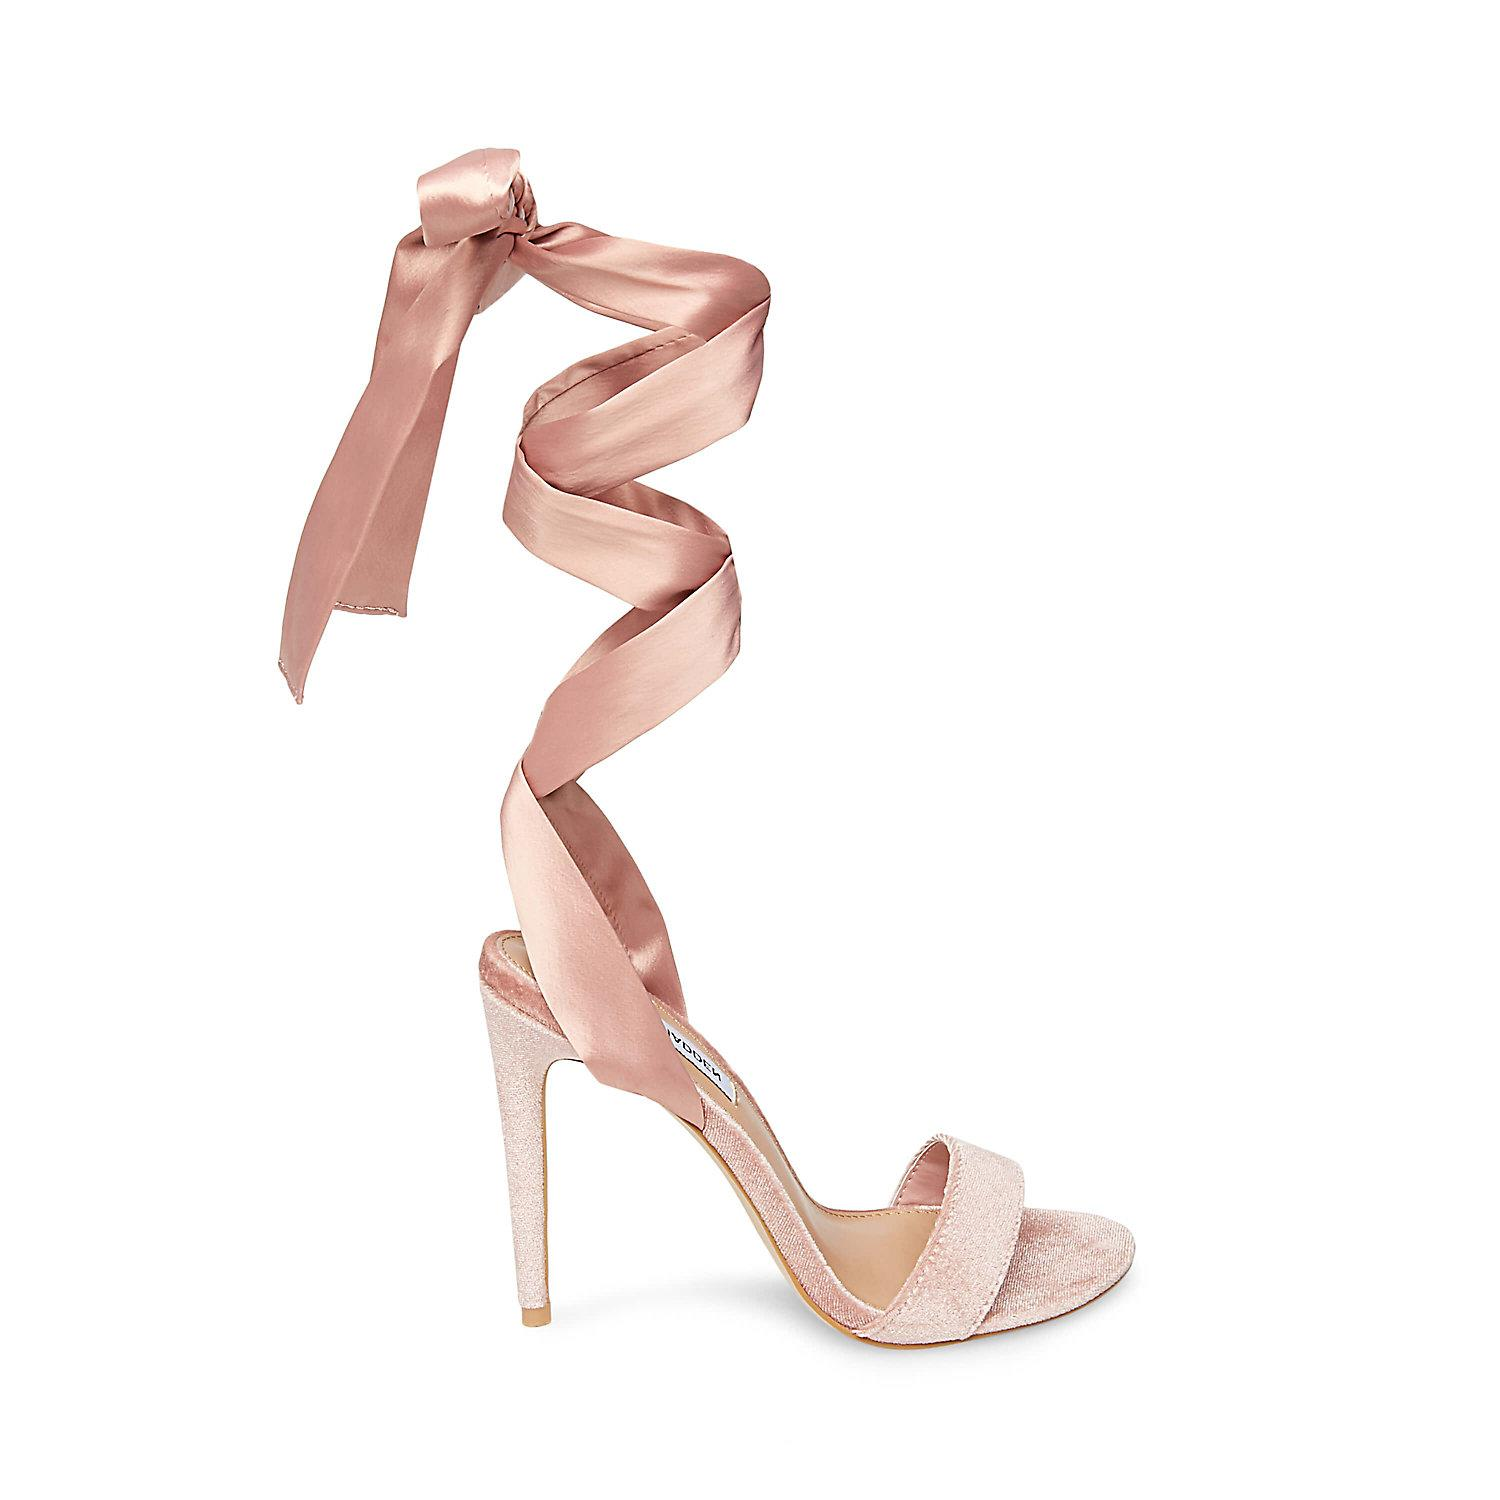 ad6768b5527 Lyst - Steve Madden Promise in Pink